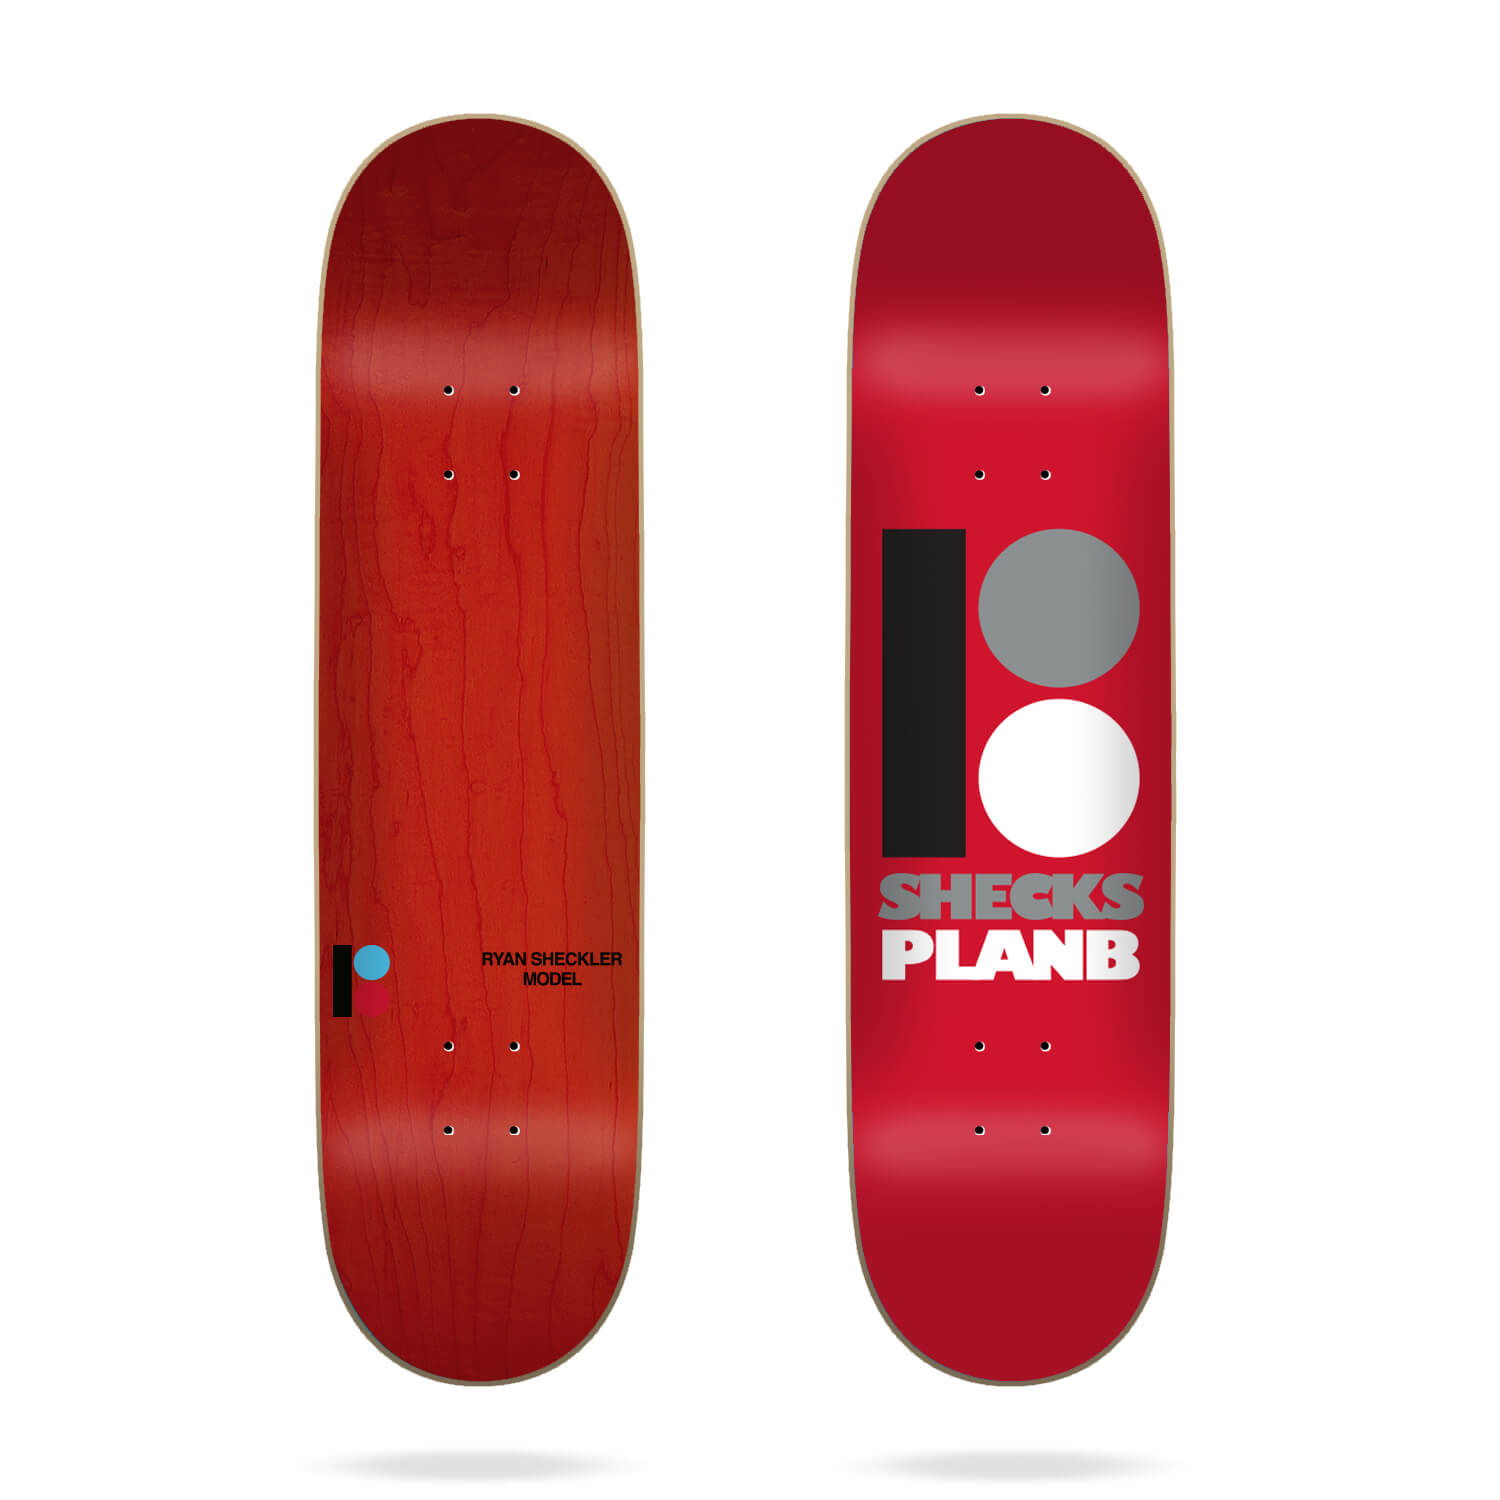 "Plan B Original Shecks 8.125"" Deck"